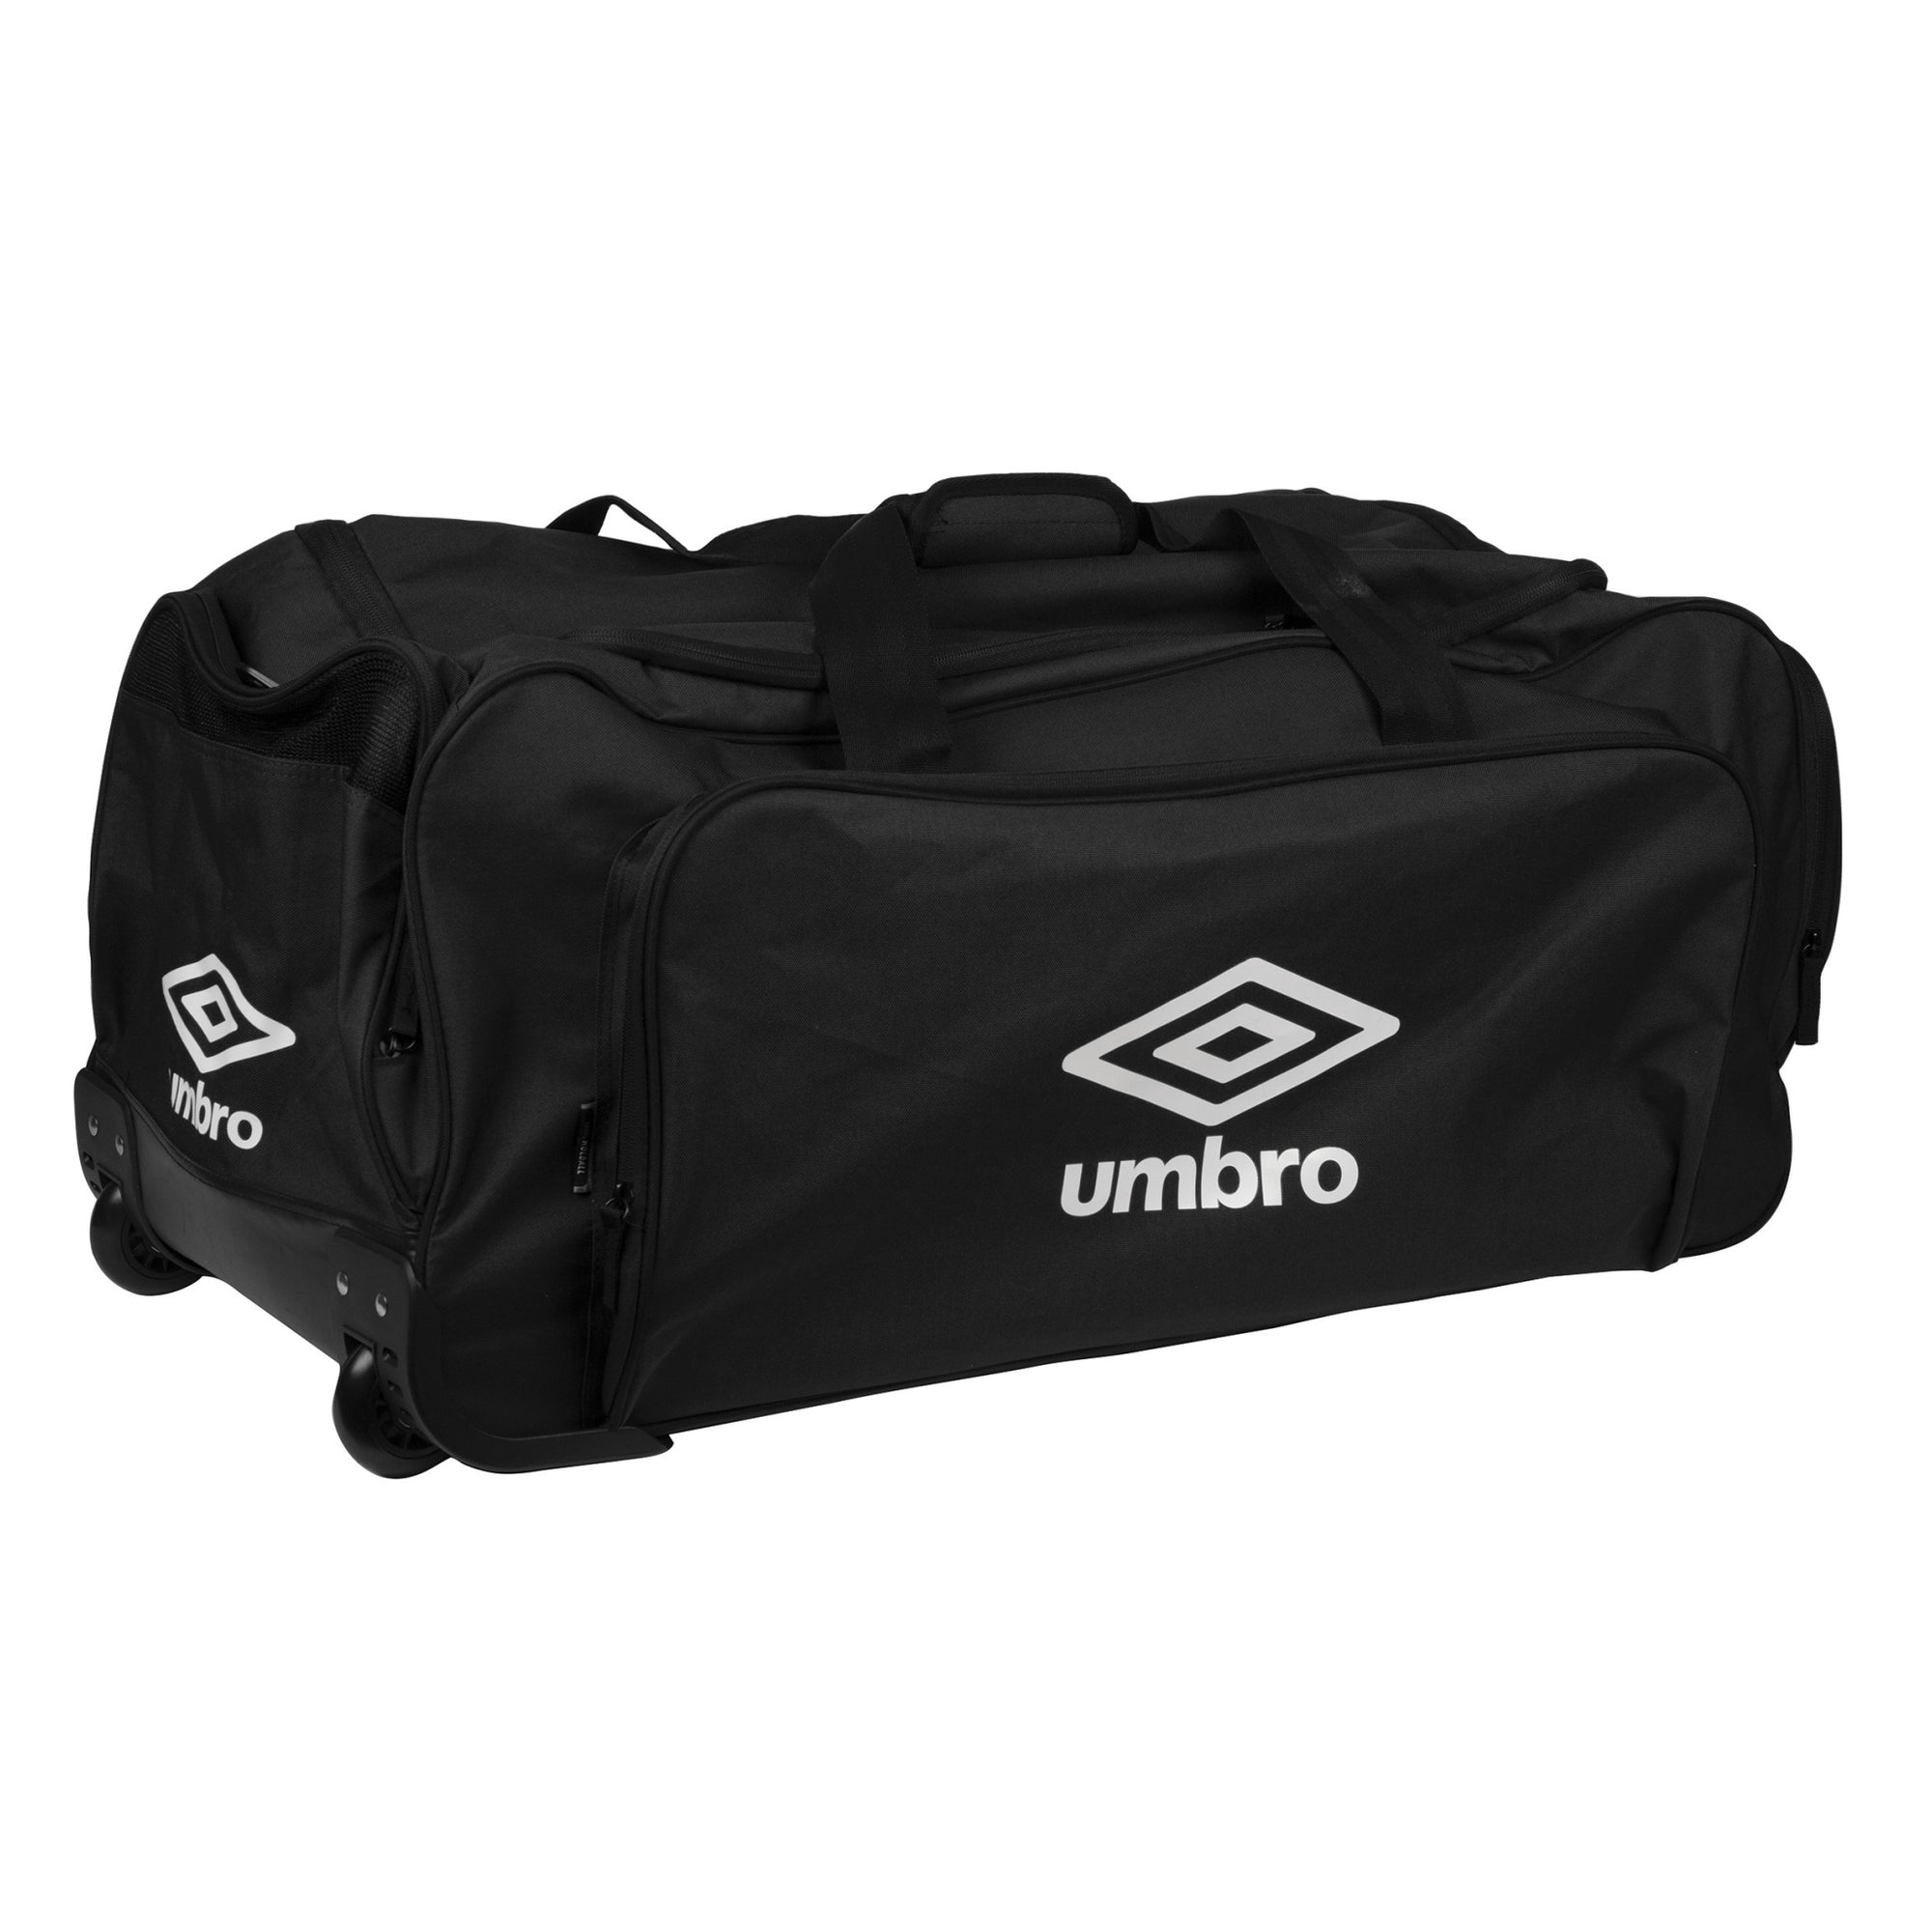 Umbro Megadeck Carrier - Black/White